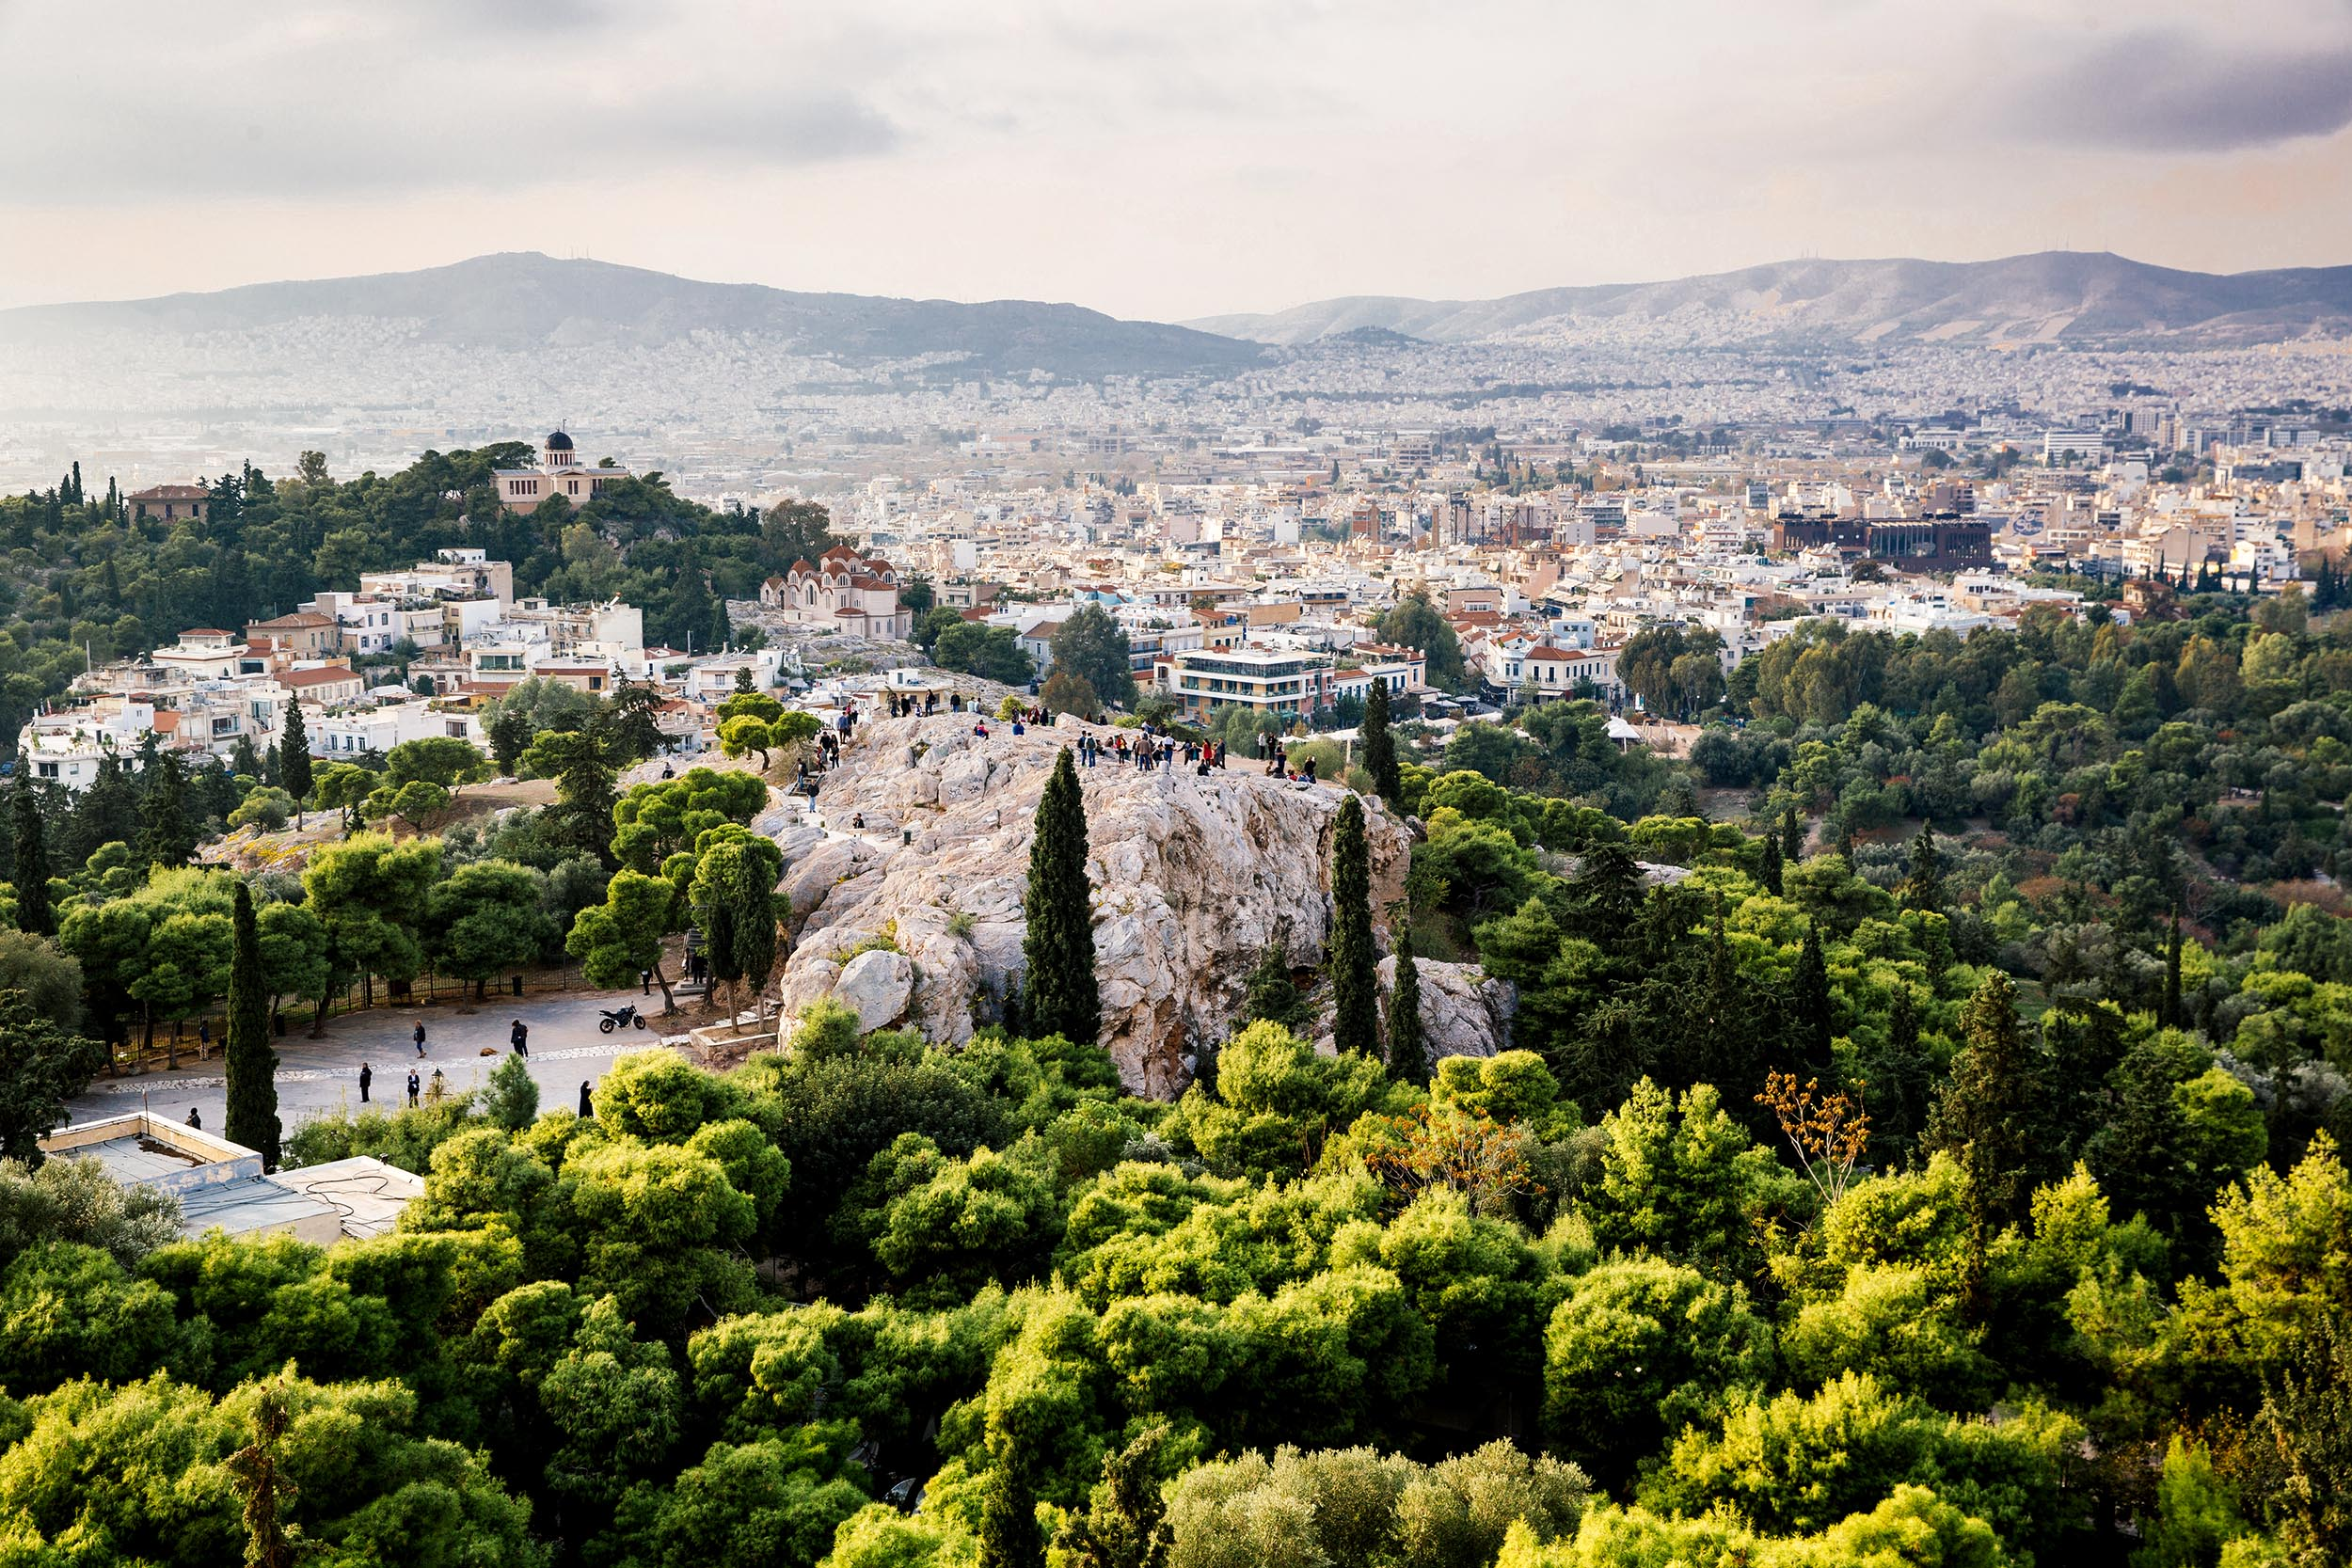 View out to rocky outcrops with people on them, and the city of Athens to the hills in the distance at evening time